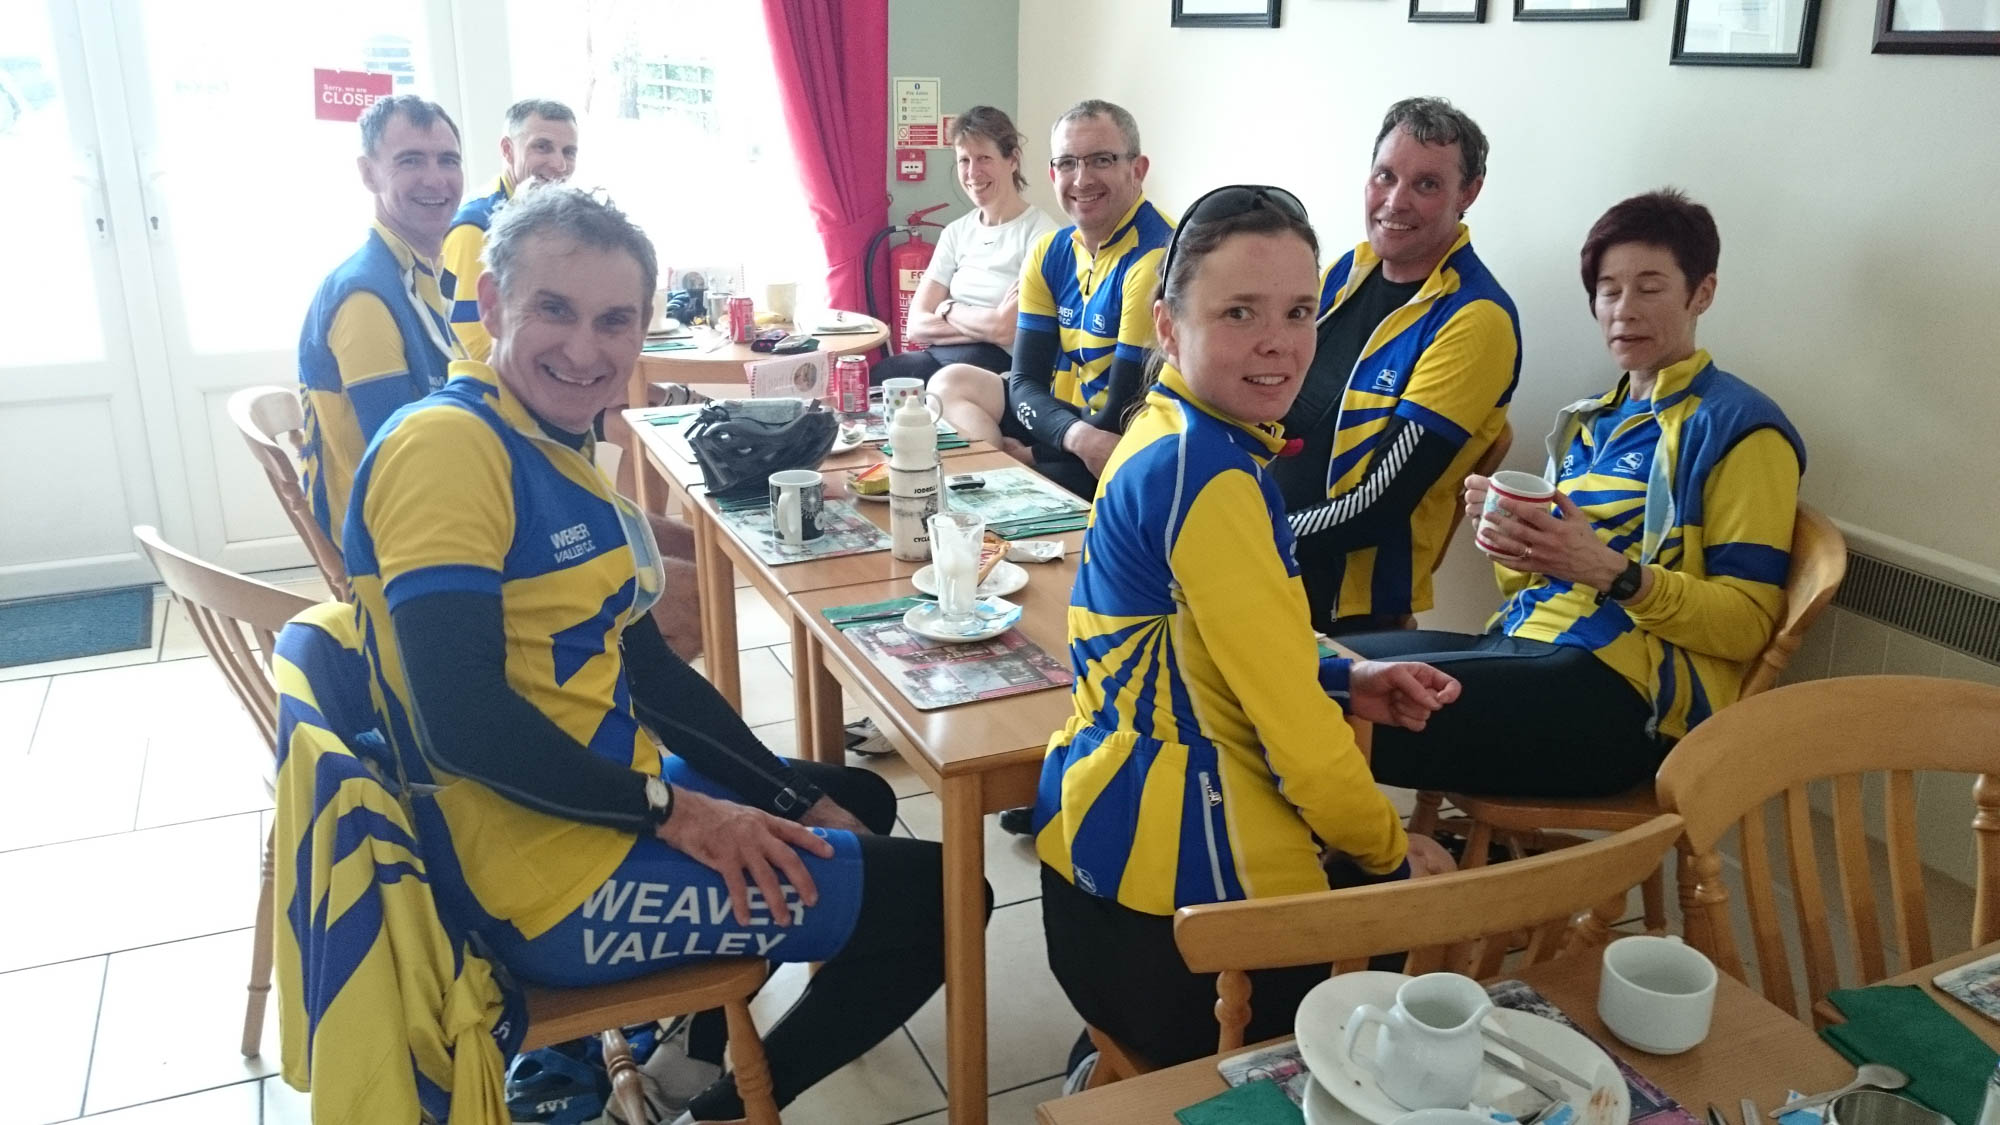 Happy Ron Sant riders at the second brew stop of the day, Brevet Populaires almost complete...!